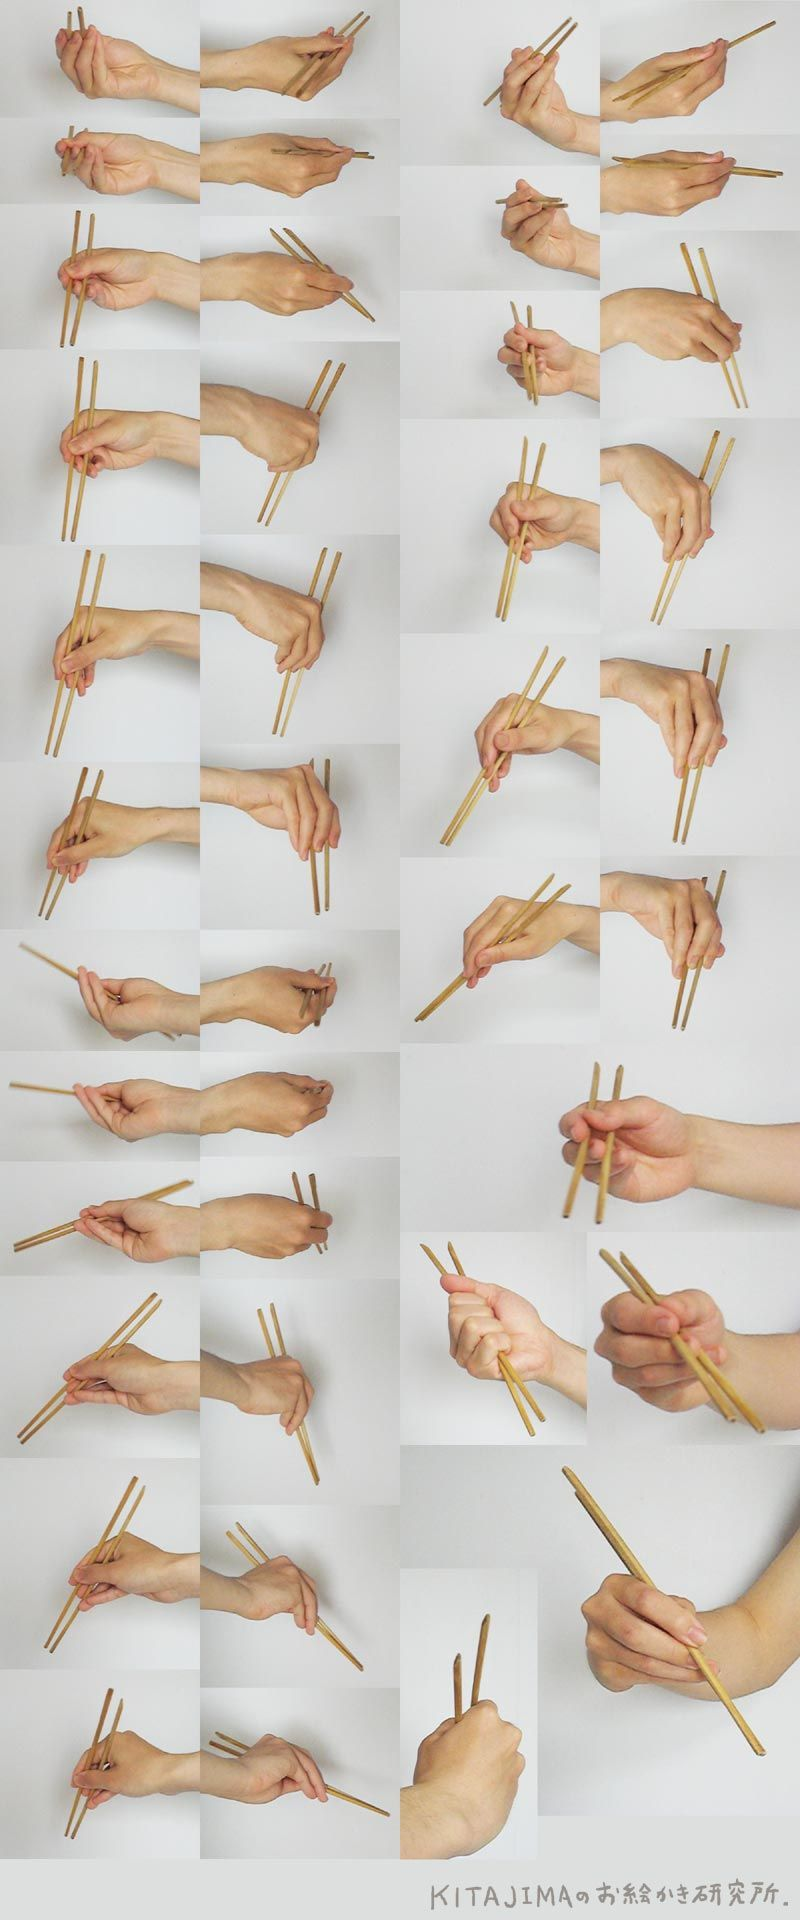 Use chopsticks with right hand | Pose reference | Pinterest ...